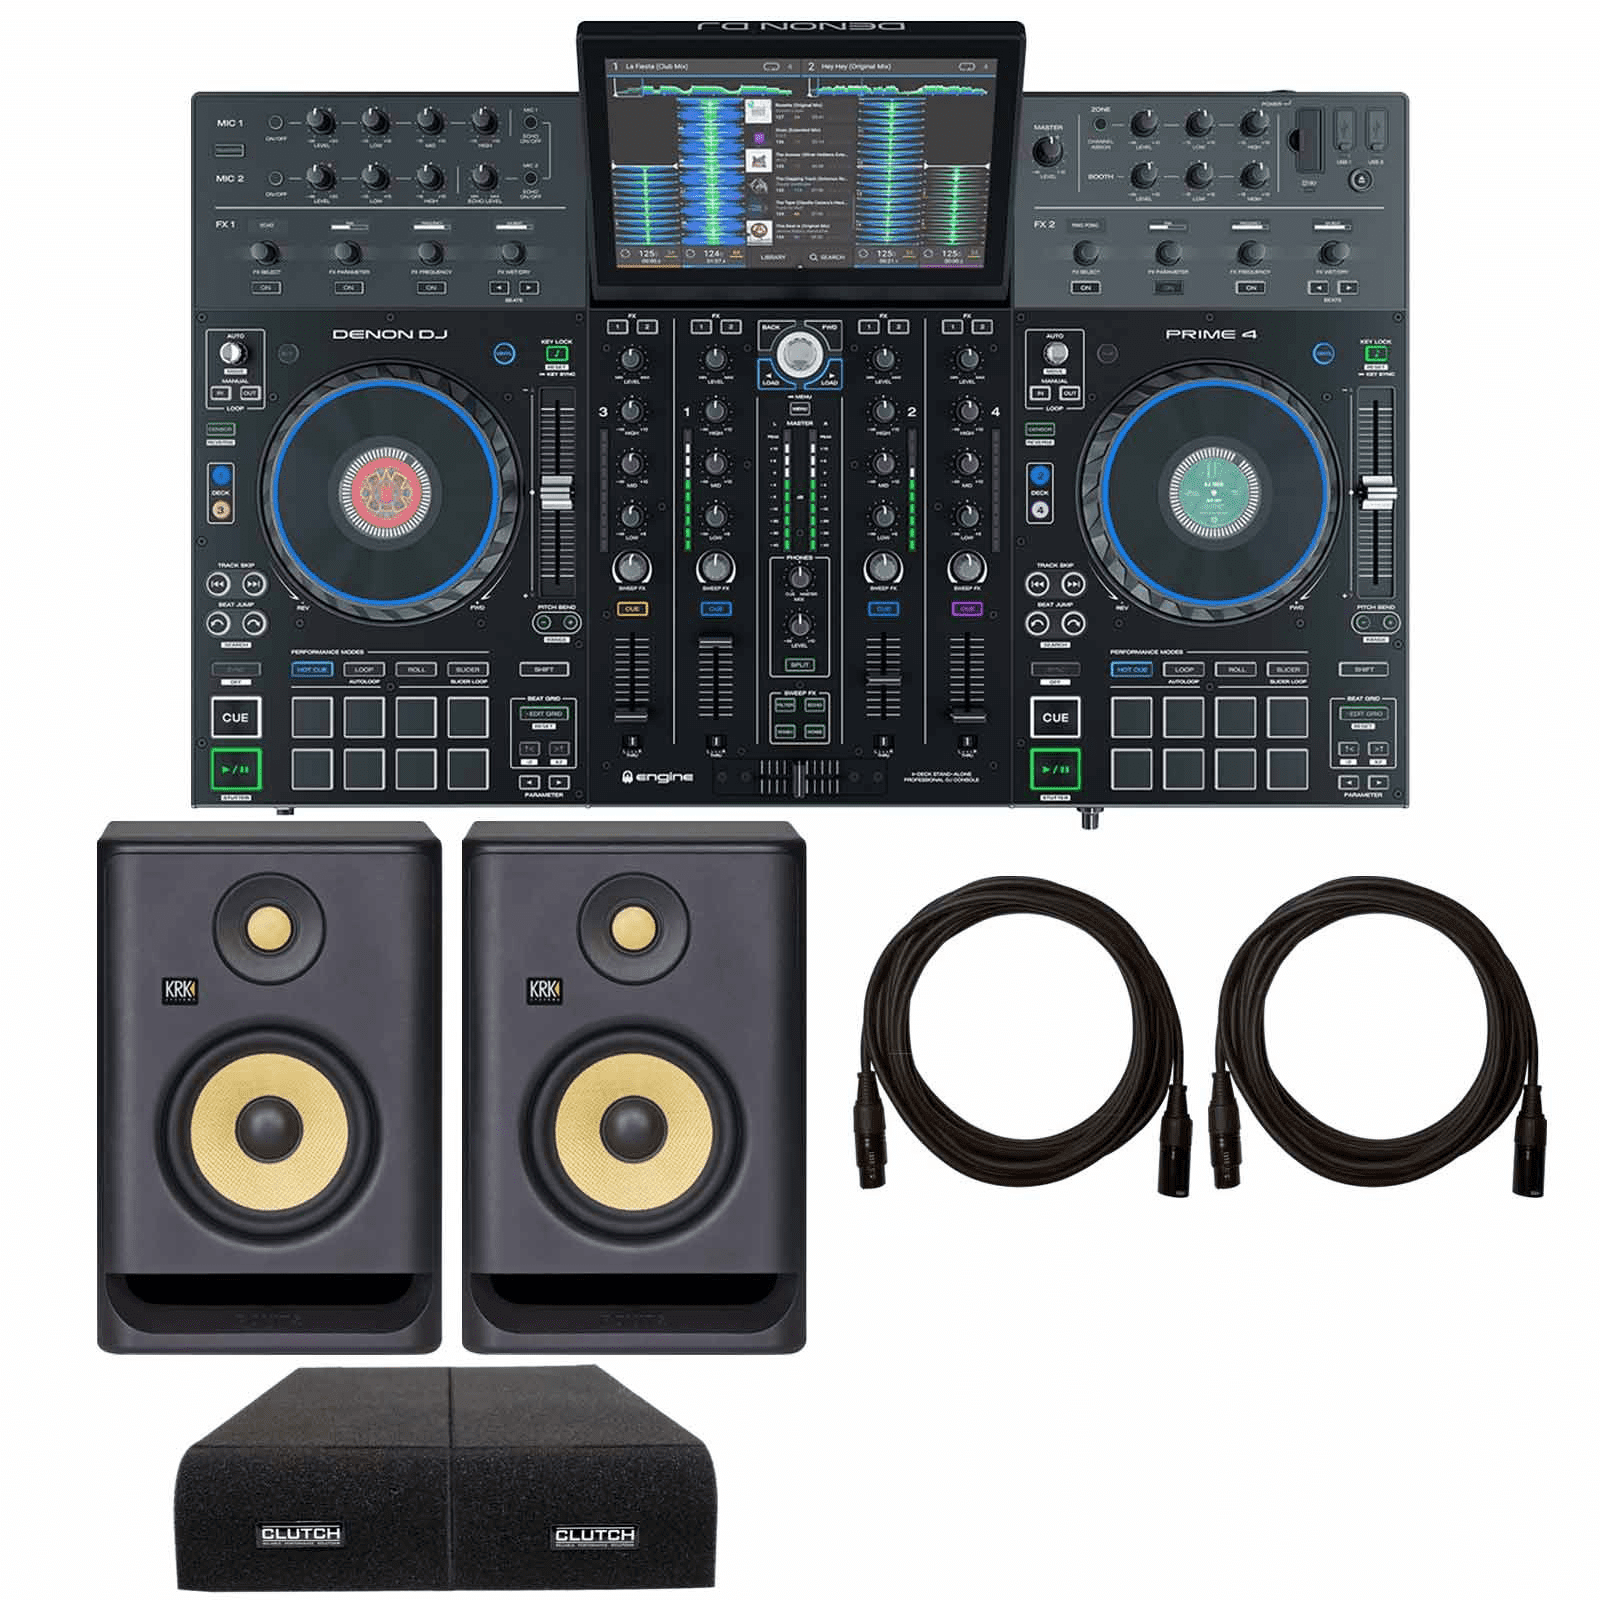 denon-dj-prime-4-4-deck-standalone-dj-system-with-krk-rokit-rp5-g4-5-powered-studio-monitor-speakers-package-a65